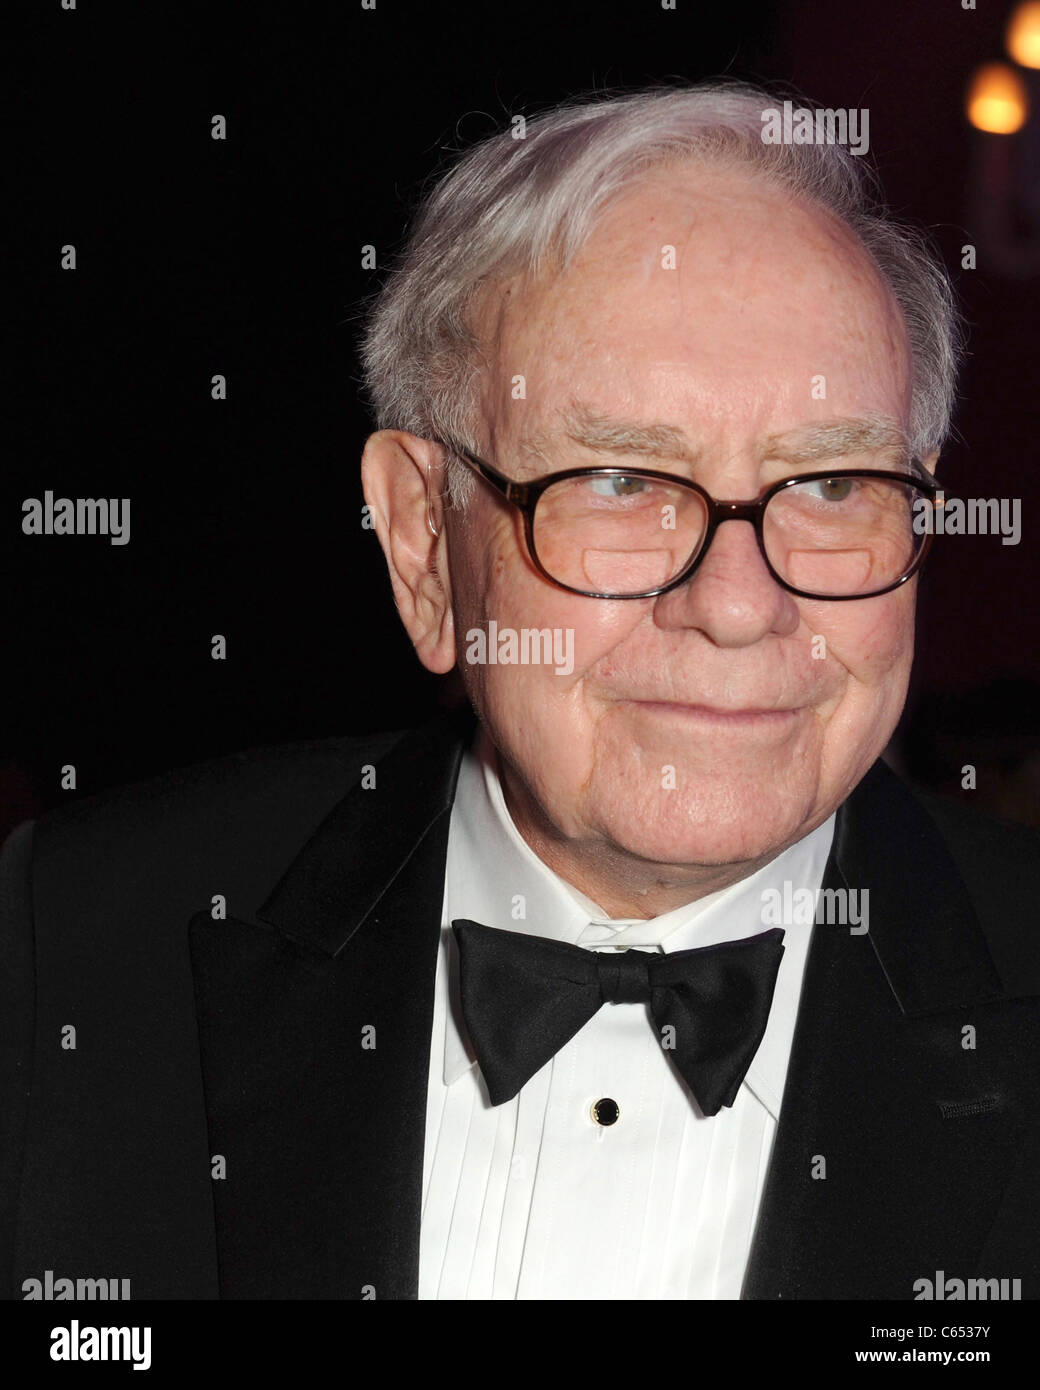 Warren Buffett in attendance for An Intimate Evening with David Foster and Friends, a private estate in Toronto, - Stock Image